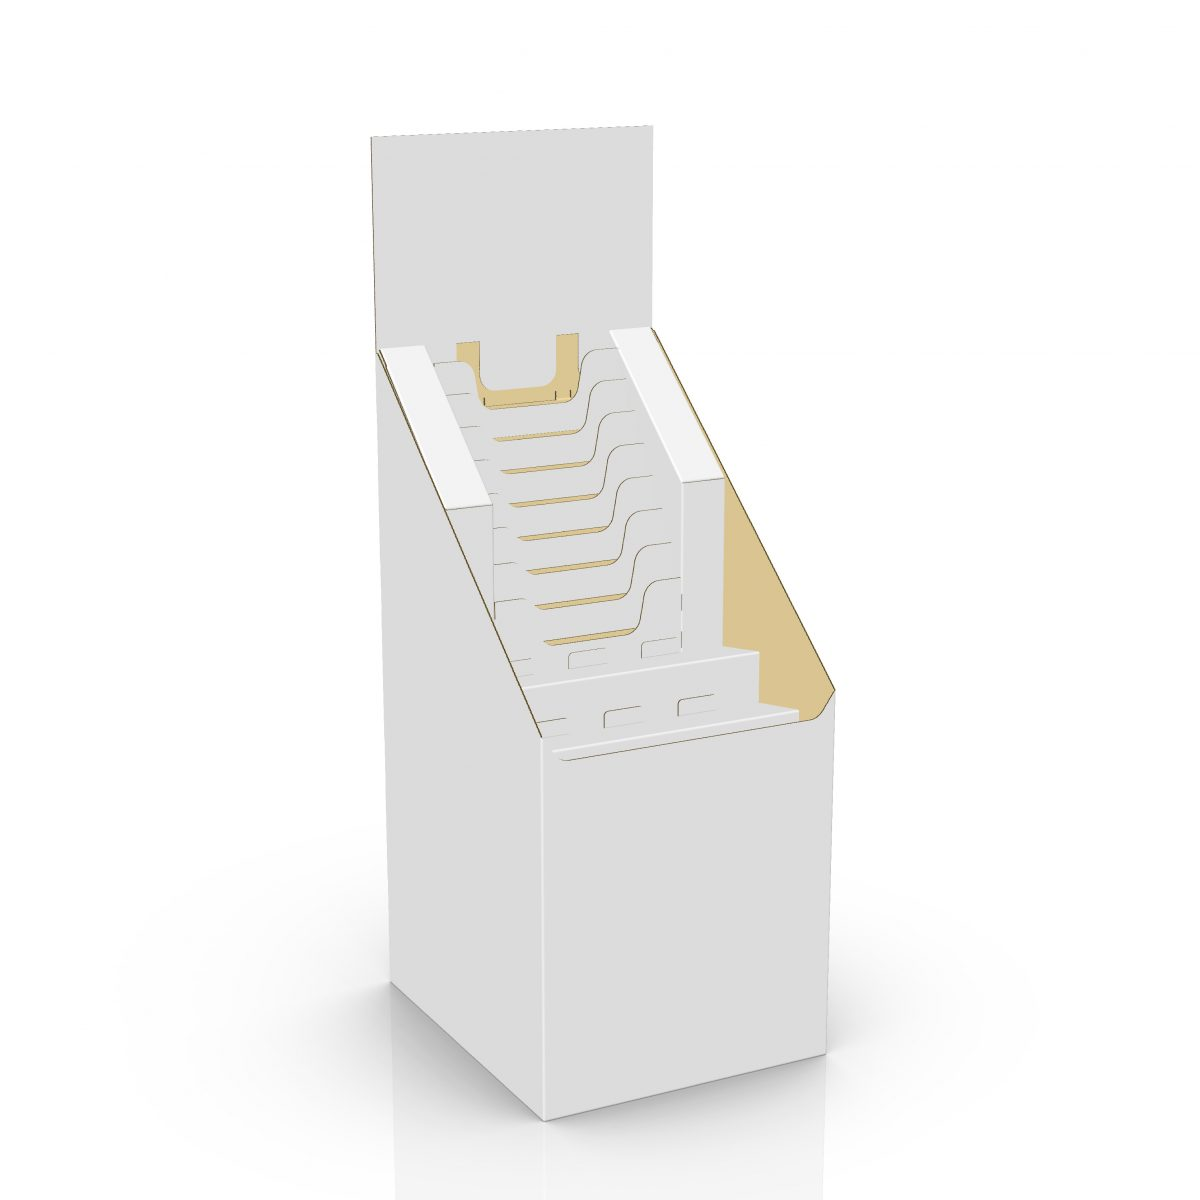 3D of Cardboard floor display with multiple file holders, a header and 2 shelves, size of a quarter pallet